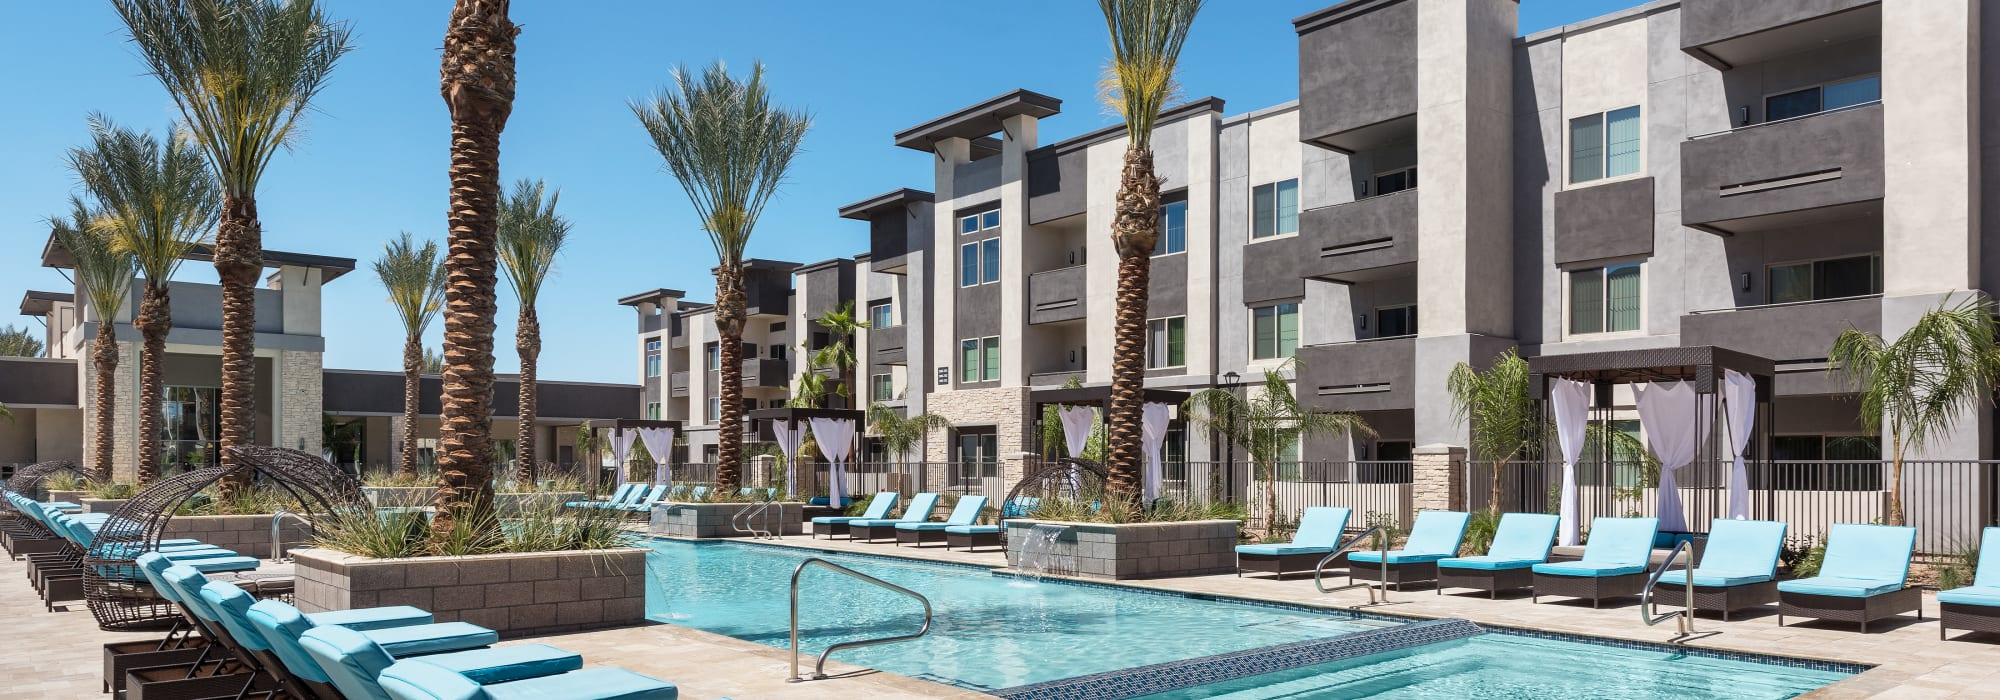 Poolside with lounge chairs at Aviva in Mesa, Arizona